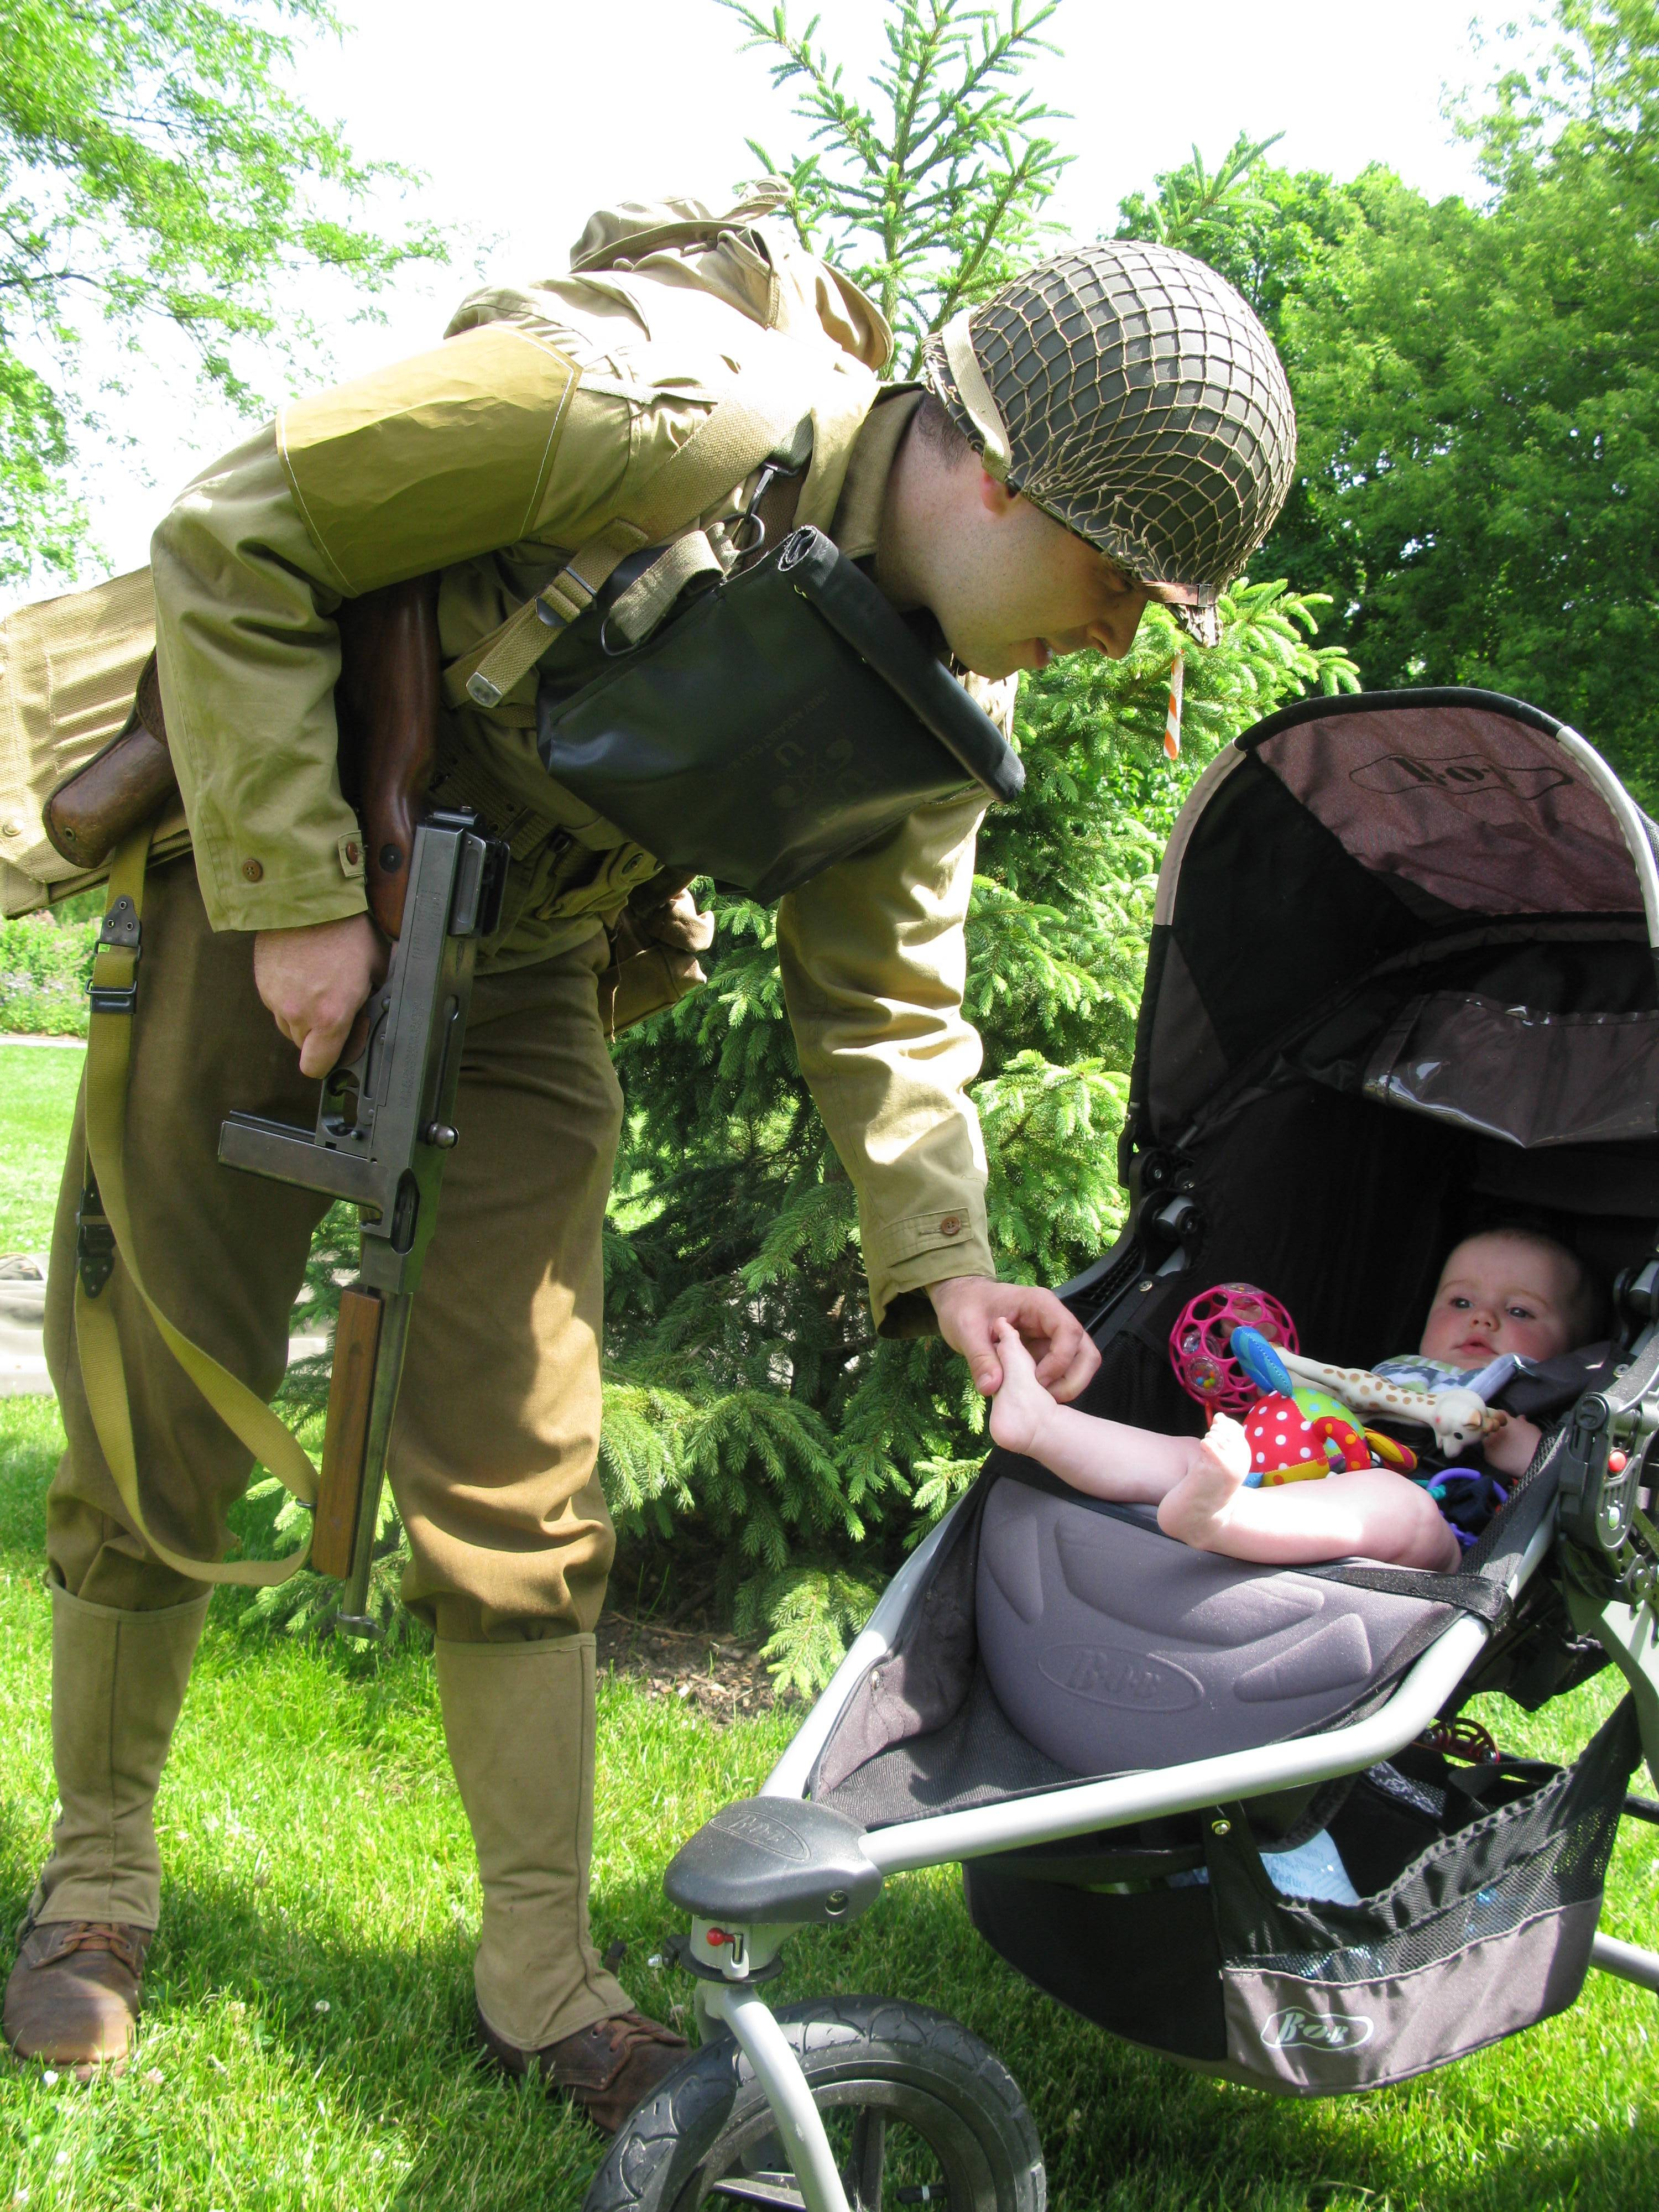 Aaron Conklin, 31, of Plainfield, with the Living History Detachment of the First Division Museum at Cantigny Park, takes a break to watch his 8-month-old daughter, Carla. Conklin is dressed as a World War II 1st Infantry Division soldier demonstrating what first wave troops wore when they landed on the beaches of Normandy, France, on D-Day.